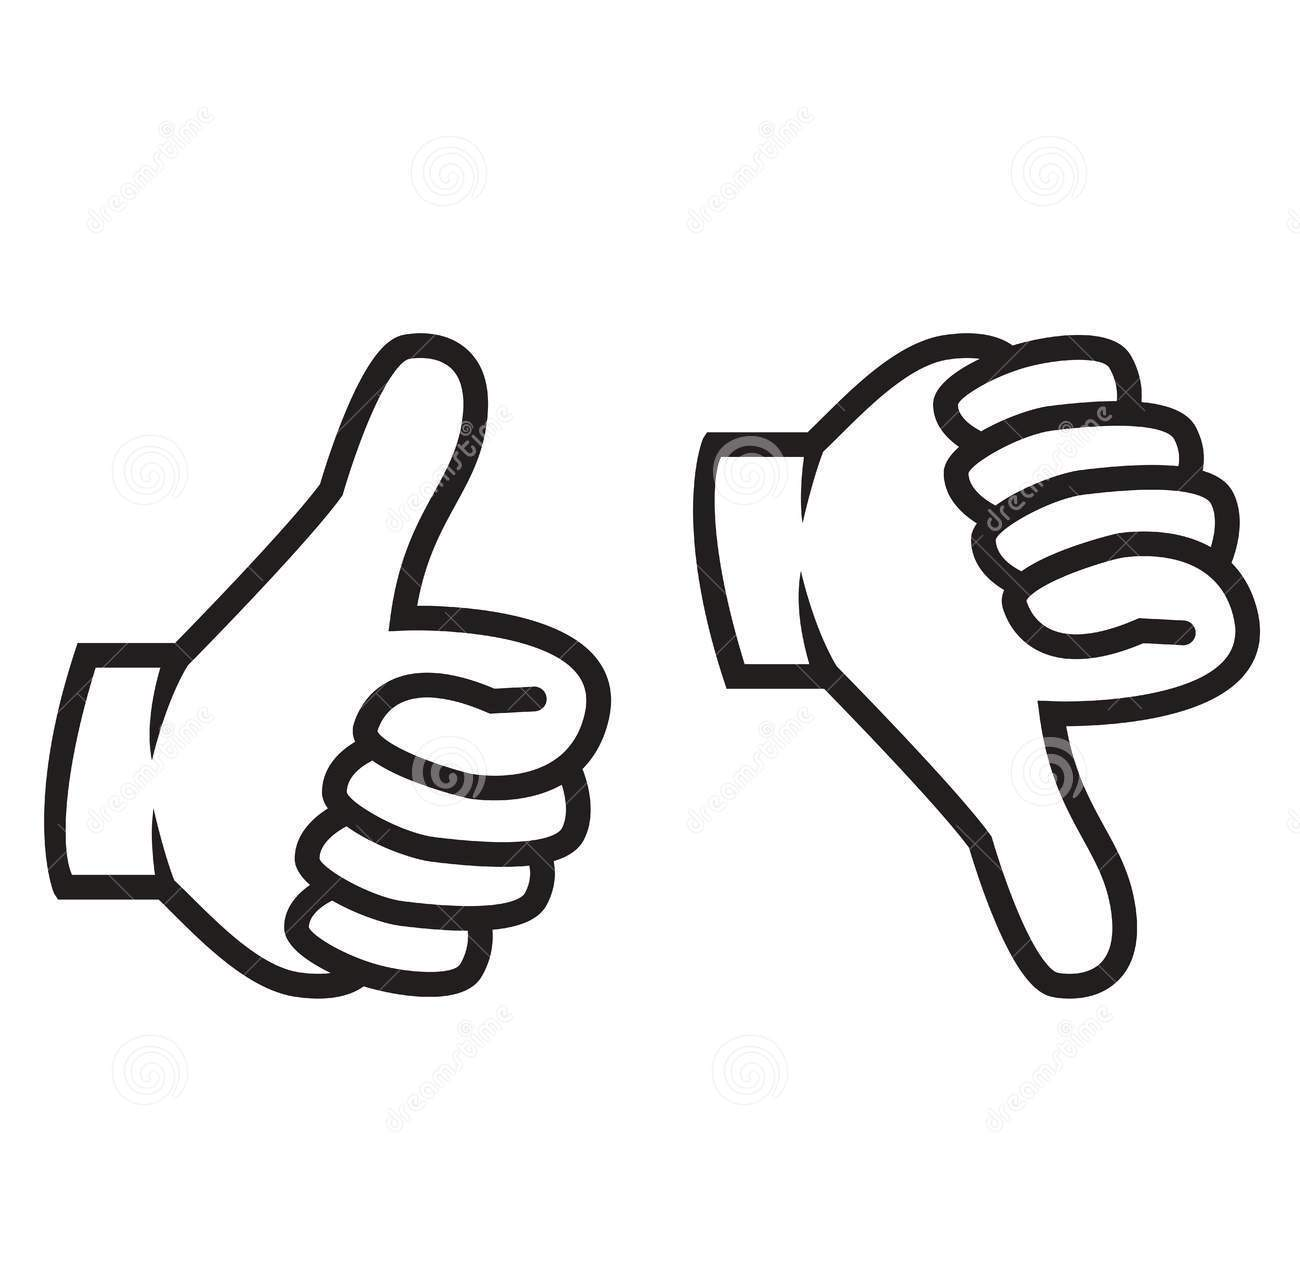 Thumbs up and down clipart 3 » Clipart Station.